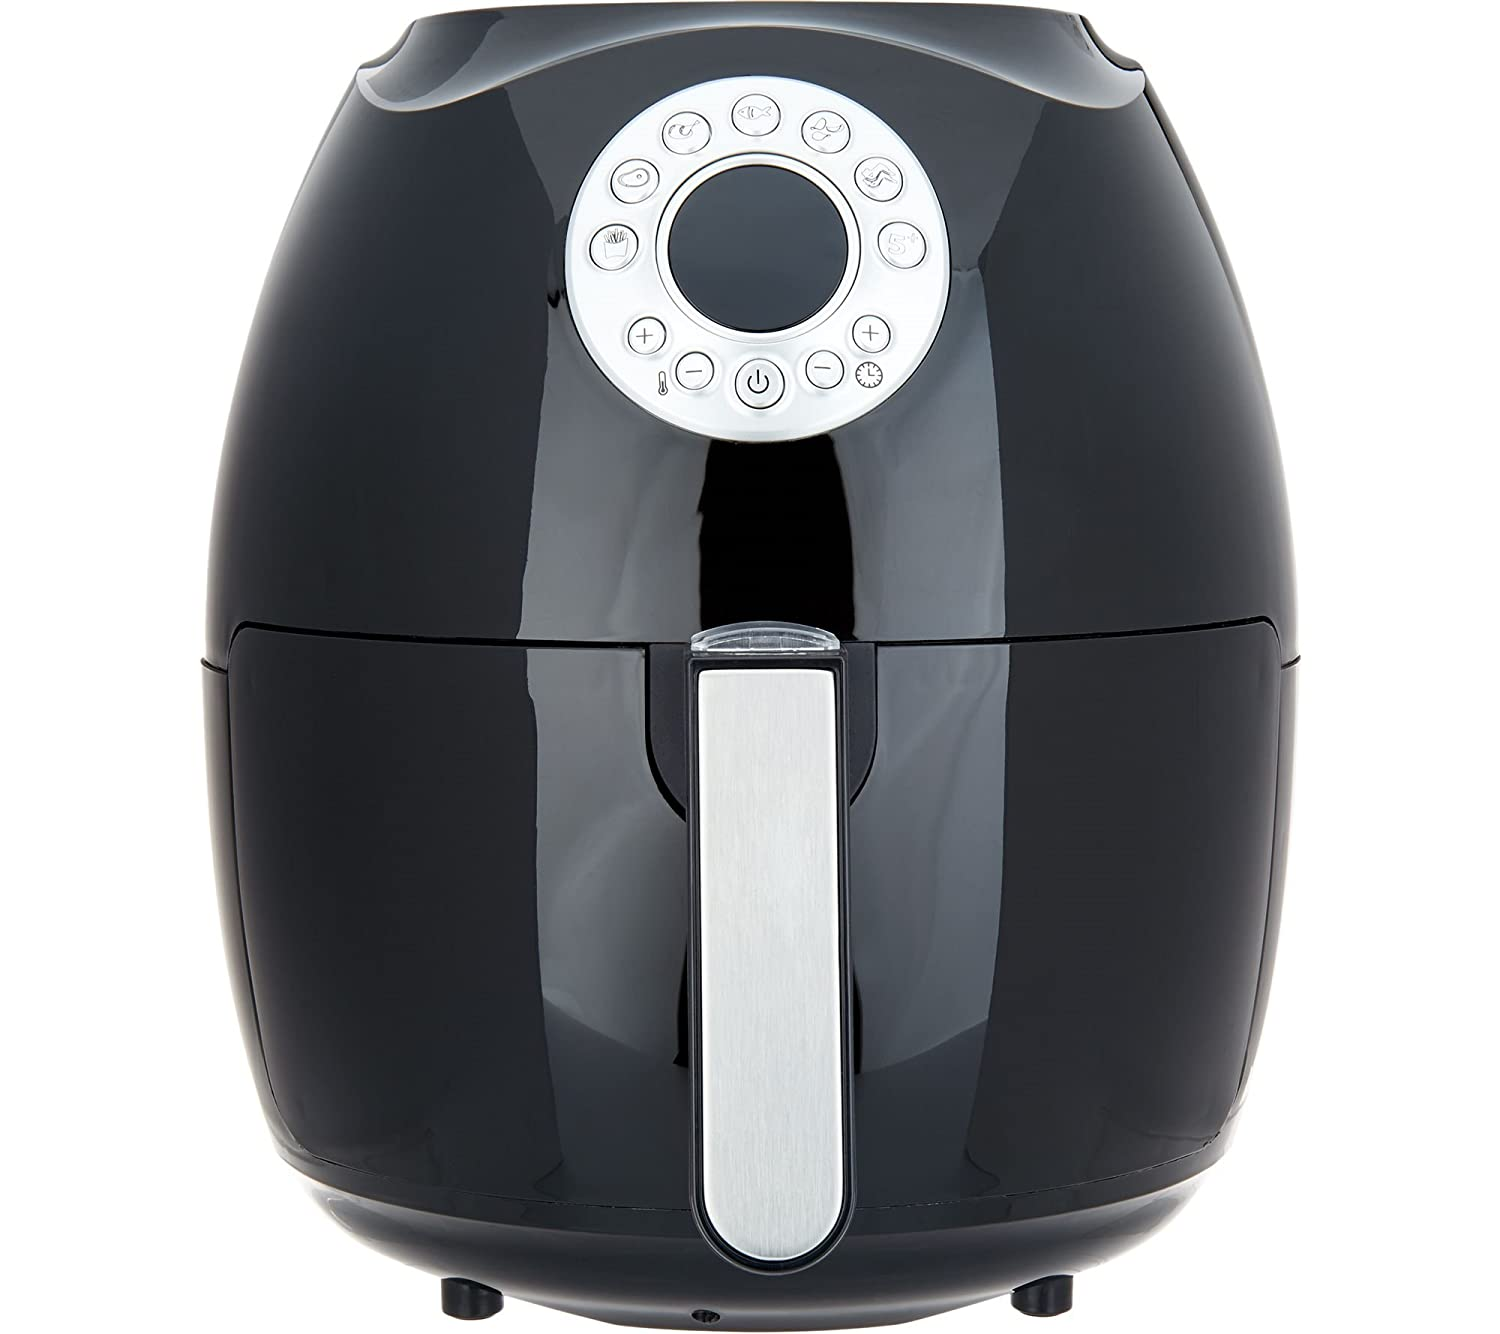 Cook's Essentials 3.4-qt Digital Air Fryer w/ Presets & Pans (Black)